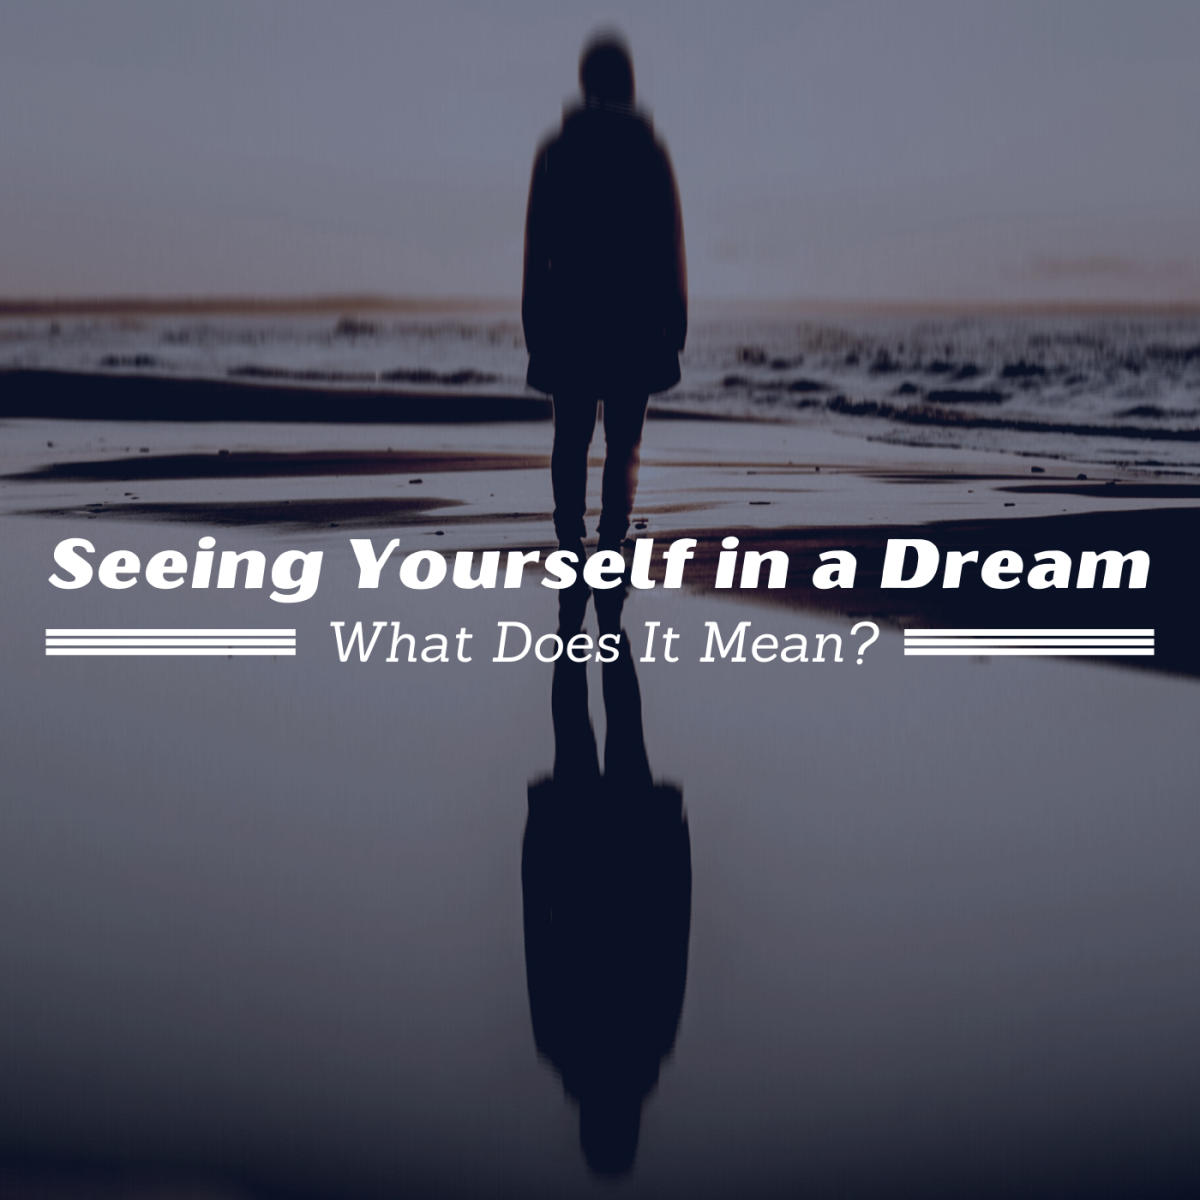 What Does It Mean When You See Yourself in a Dream?